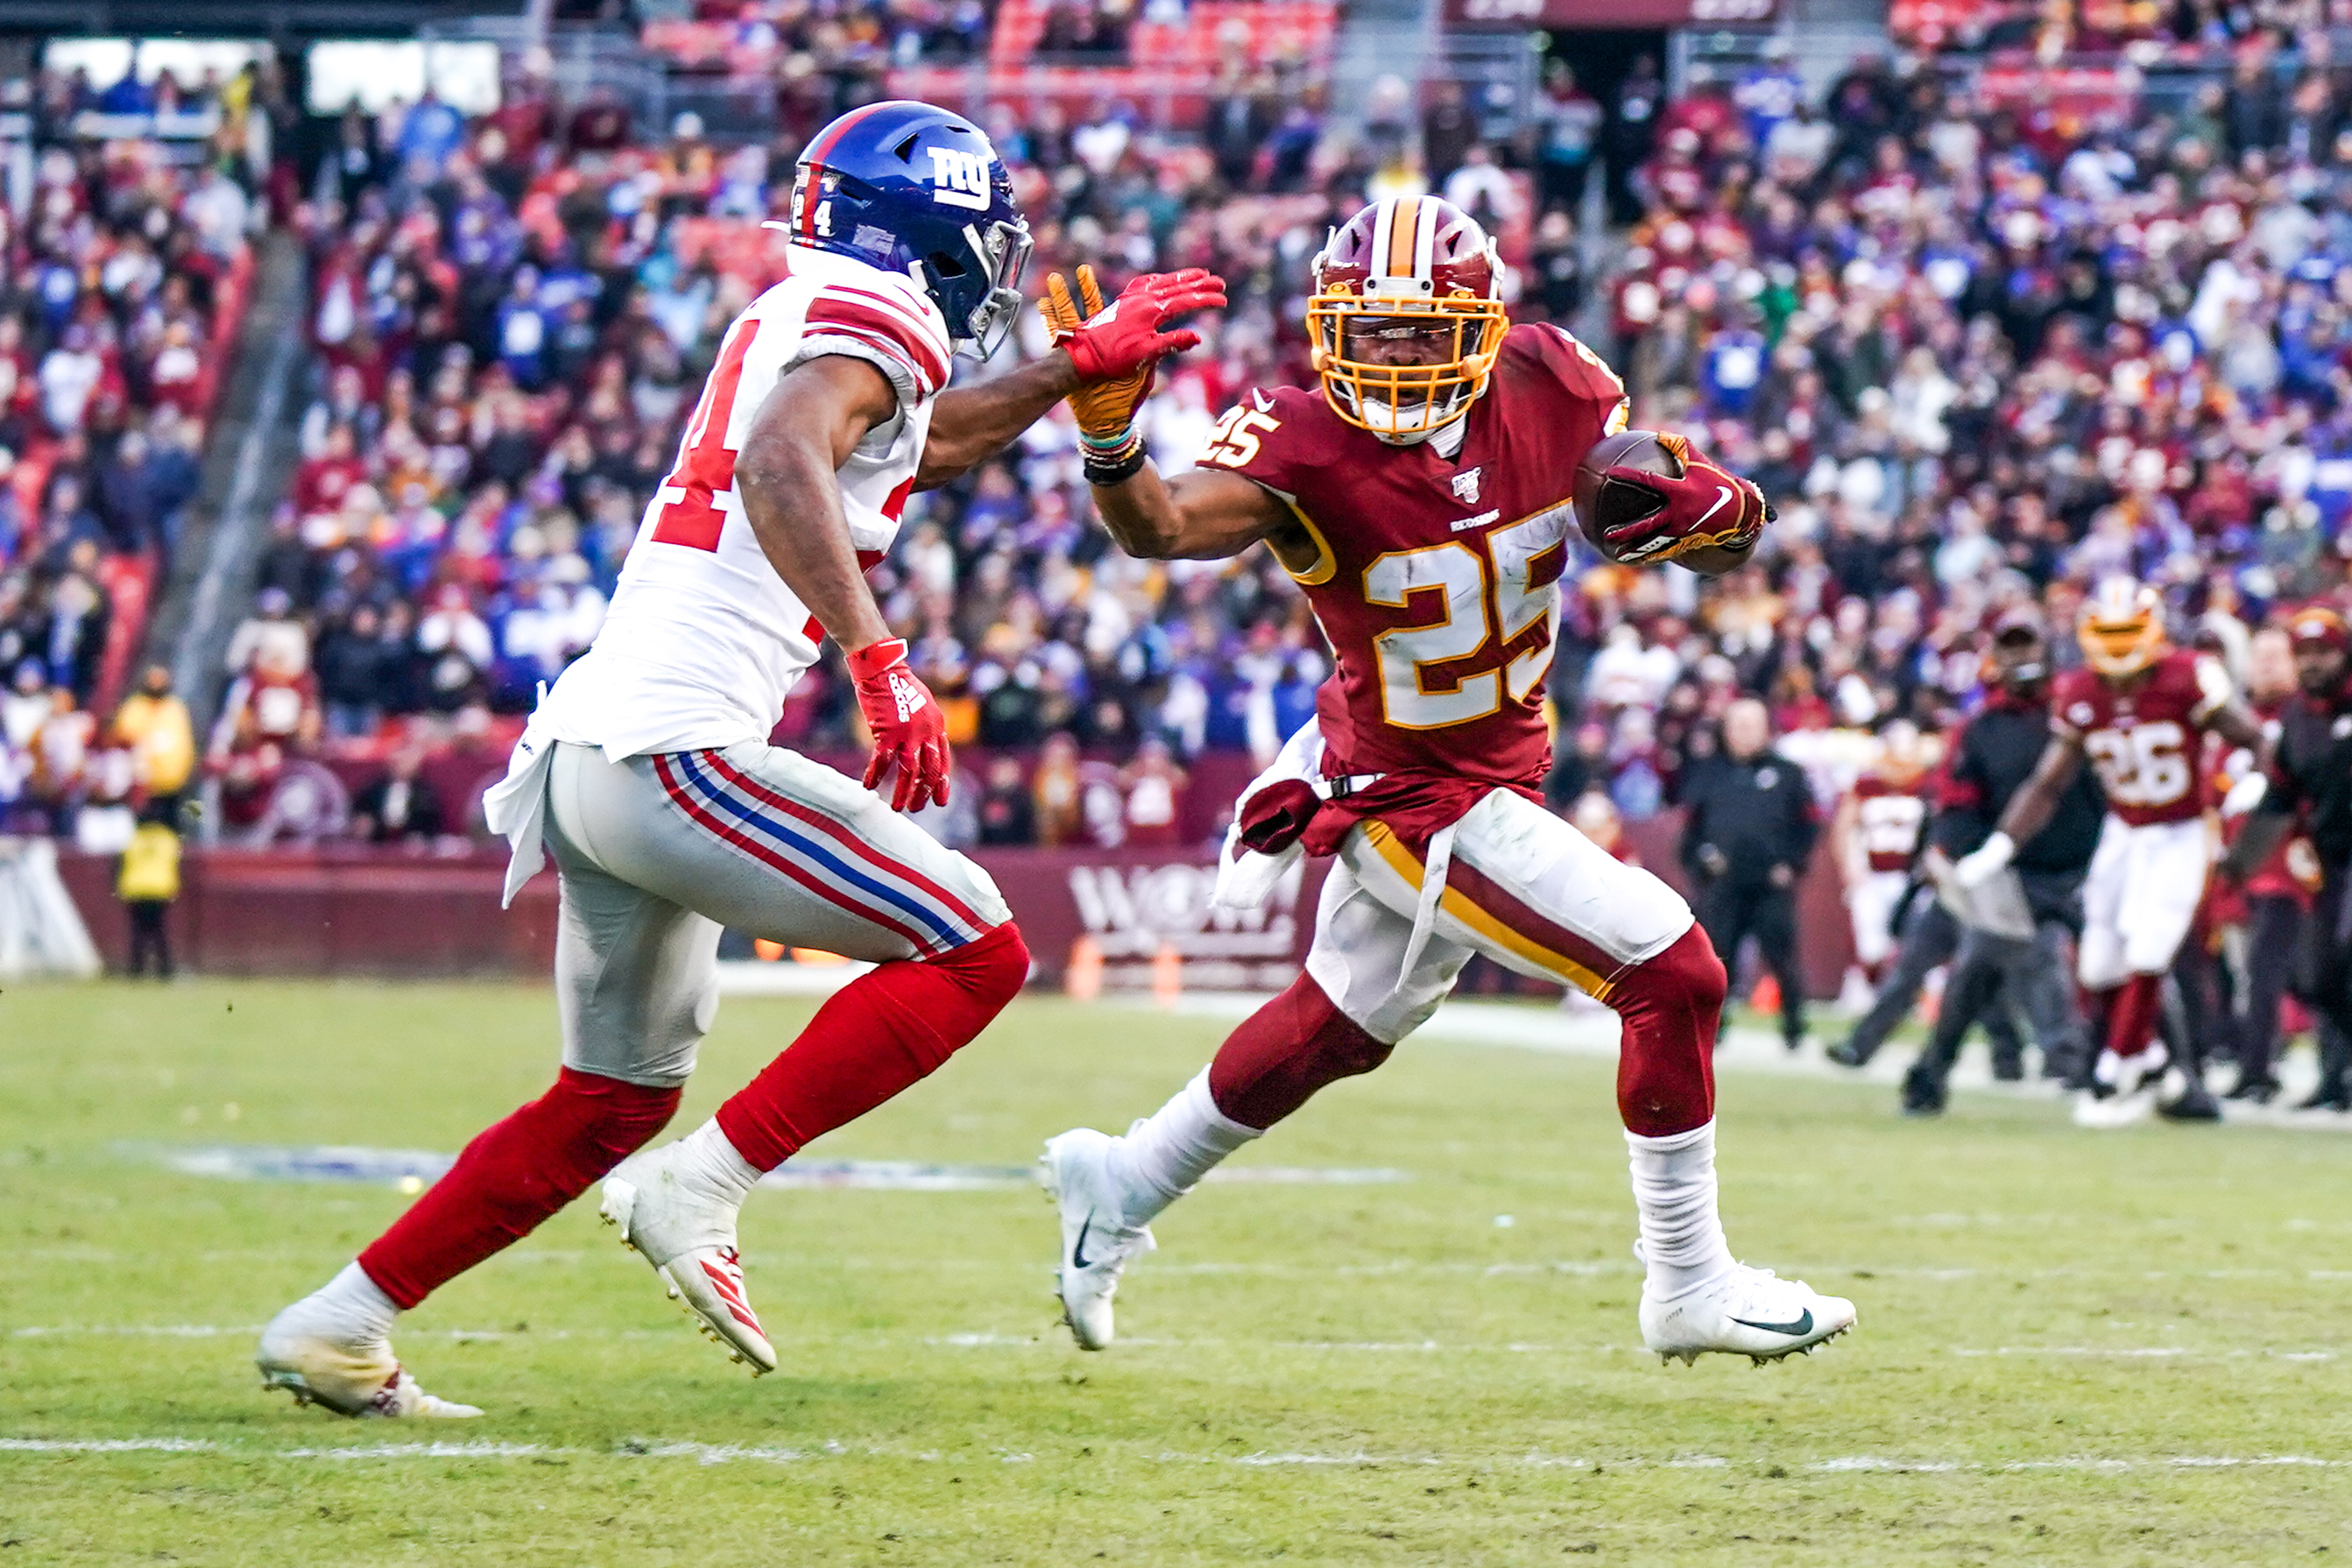 NFL: DEC 22 Giants at Redskins